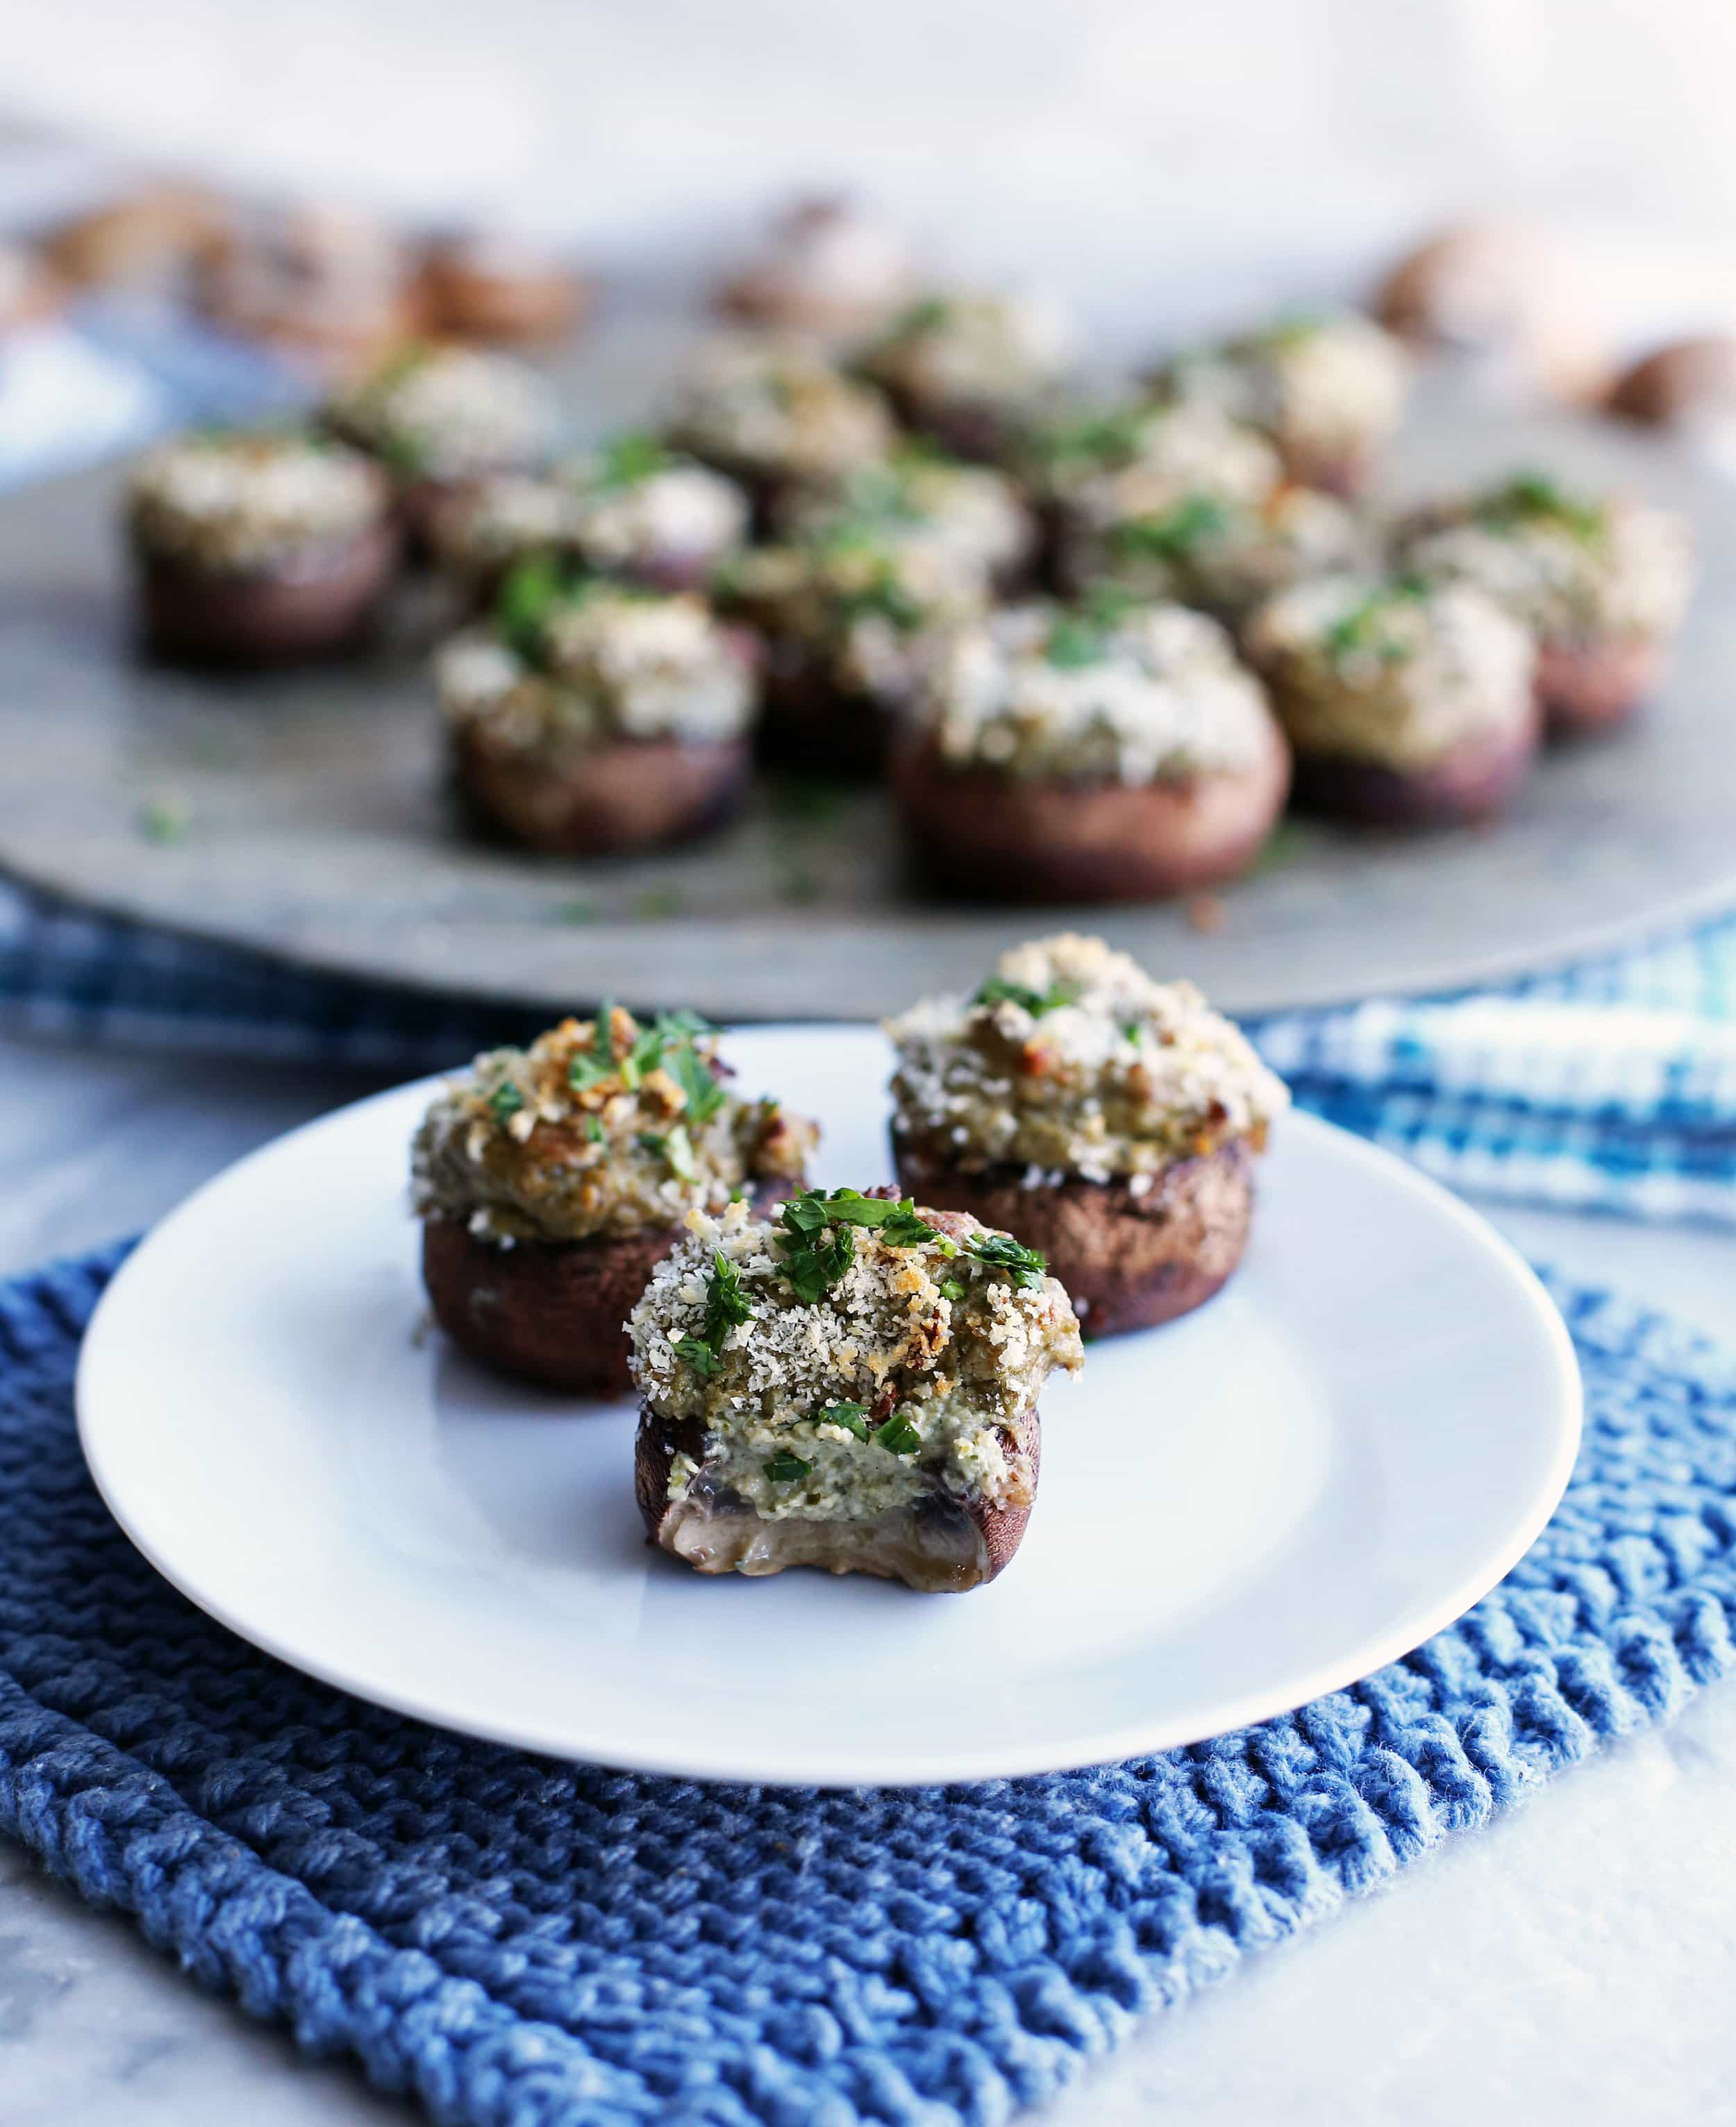 Three baked cheese stuffed mushrooms on a white plate with a bite taken out of one.